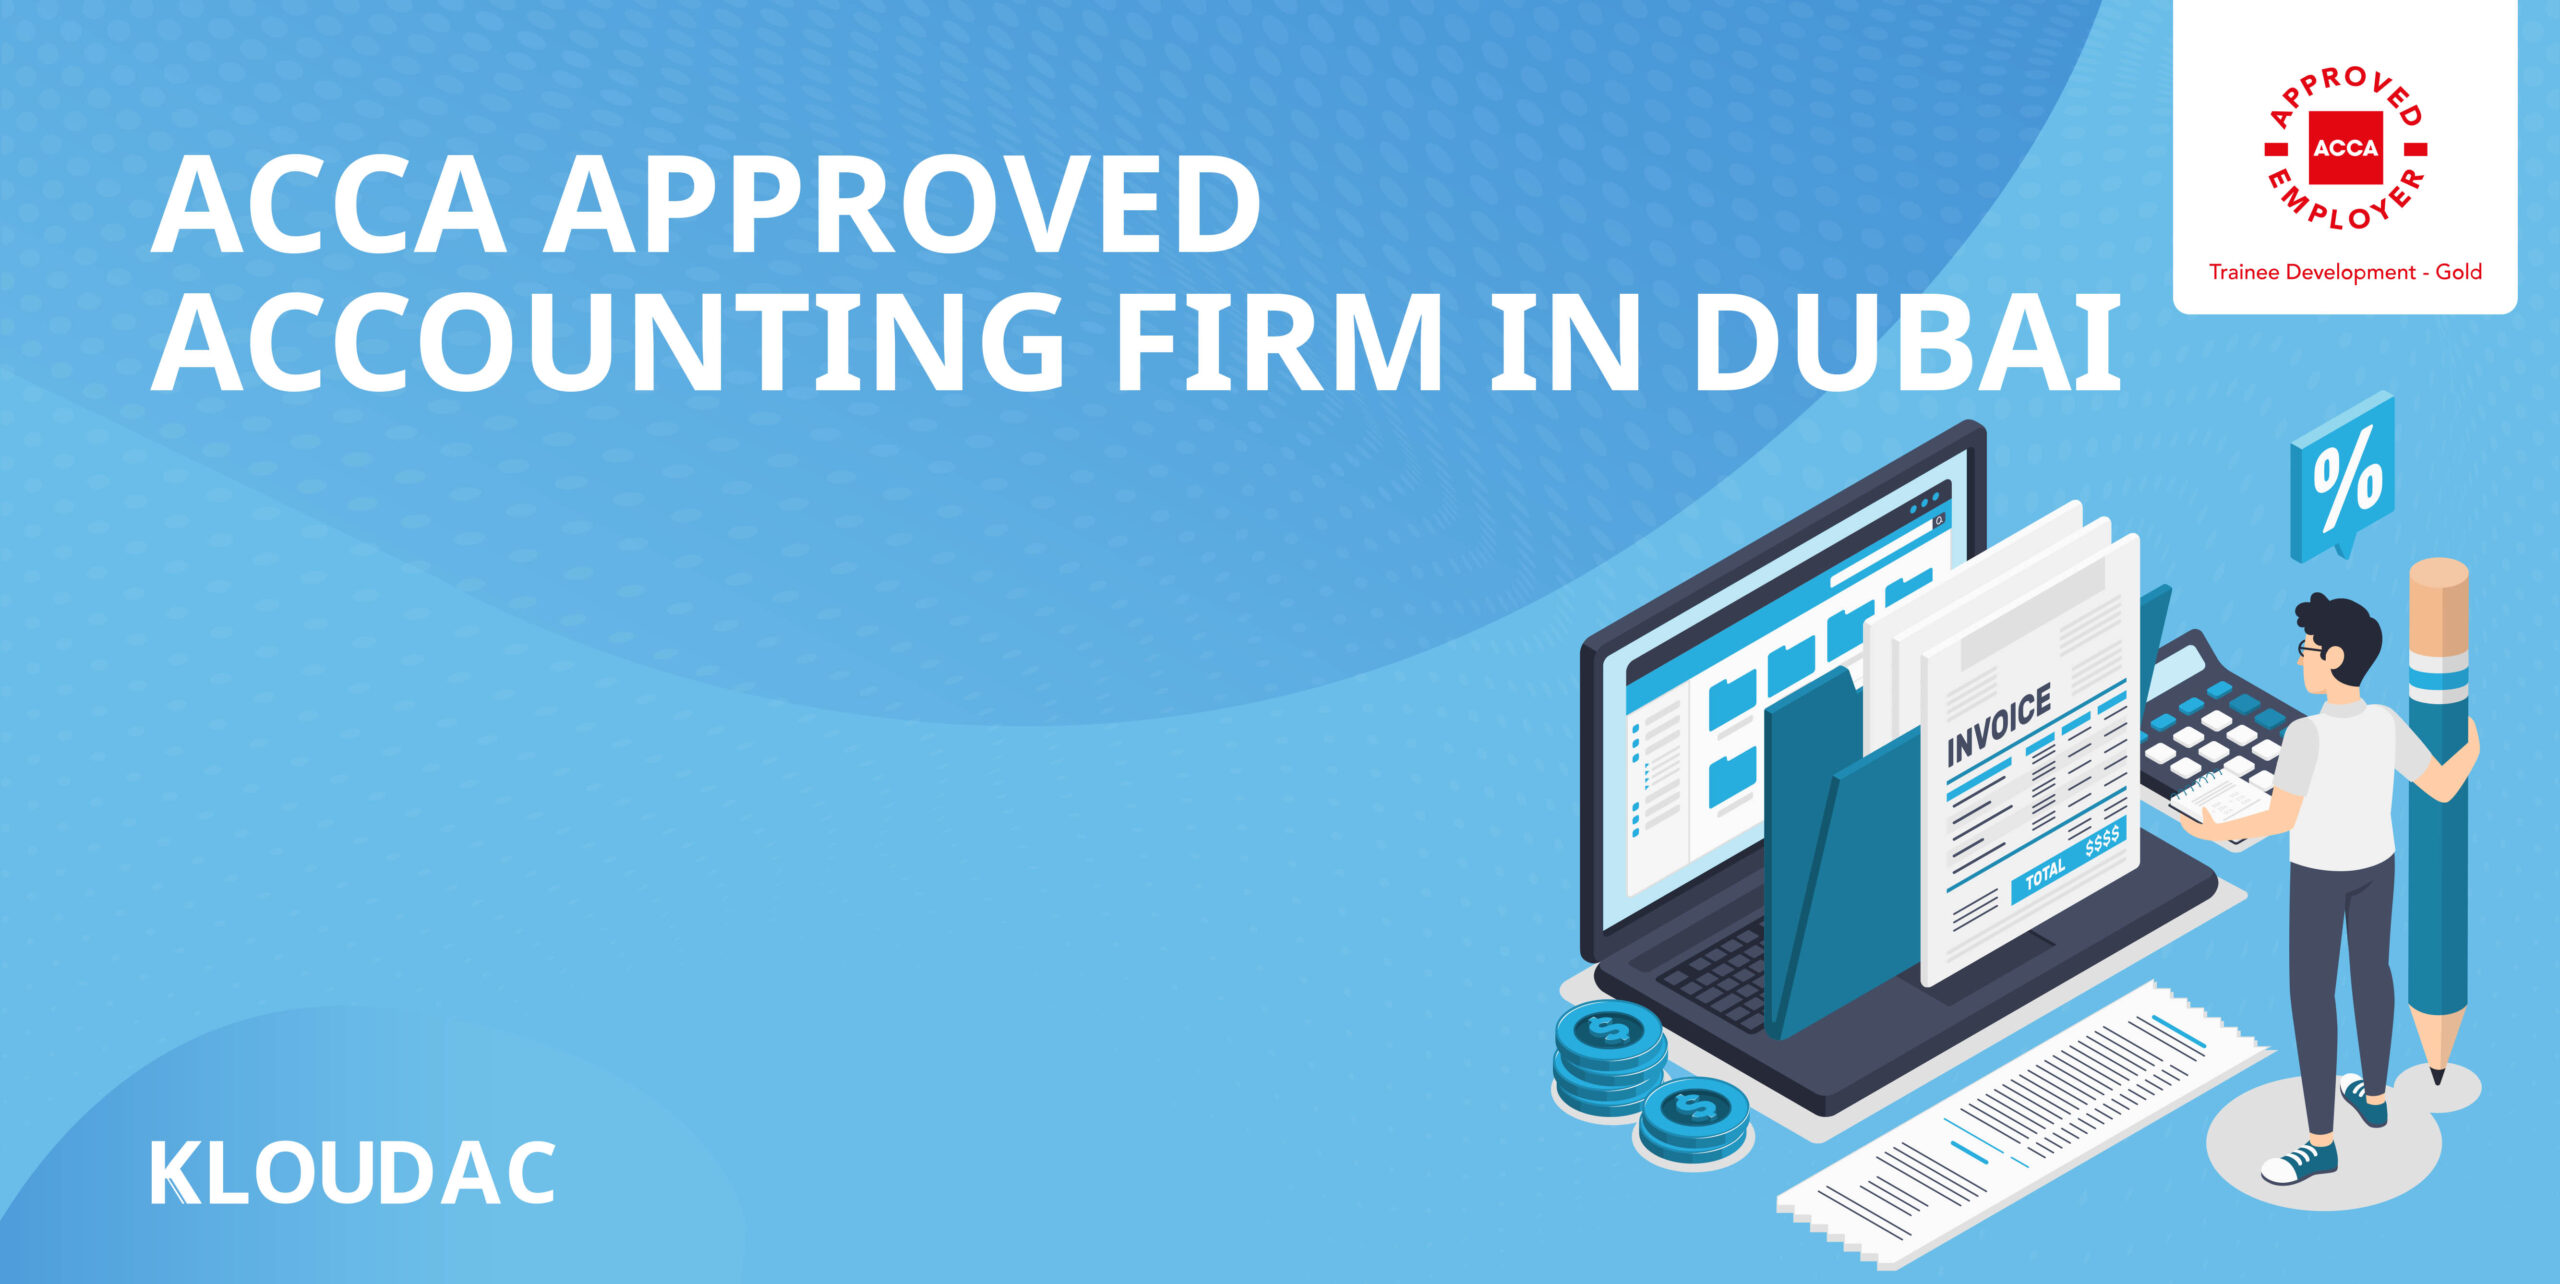 ACCA Approved Accounting Firm In Dubai